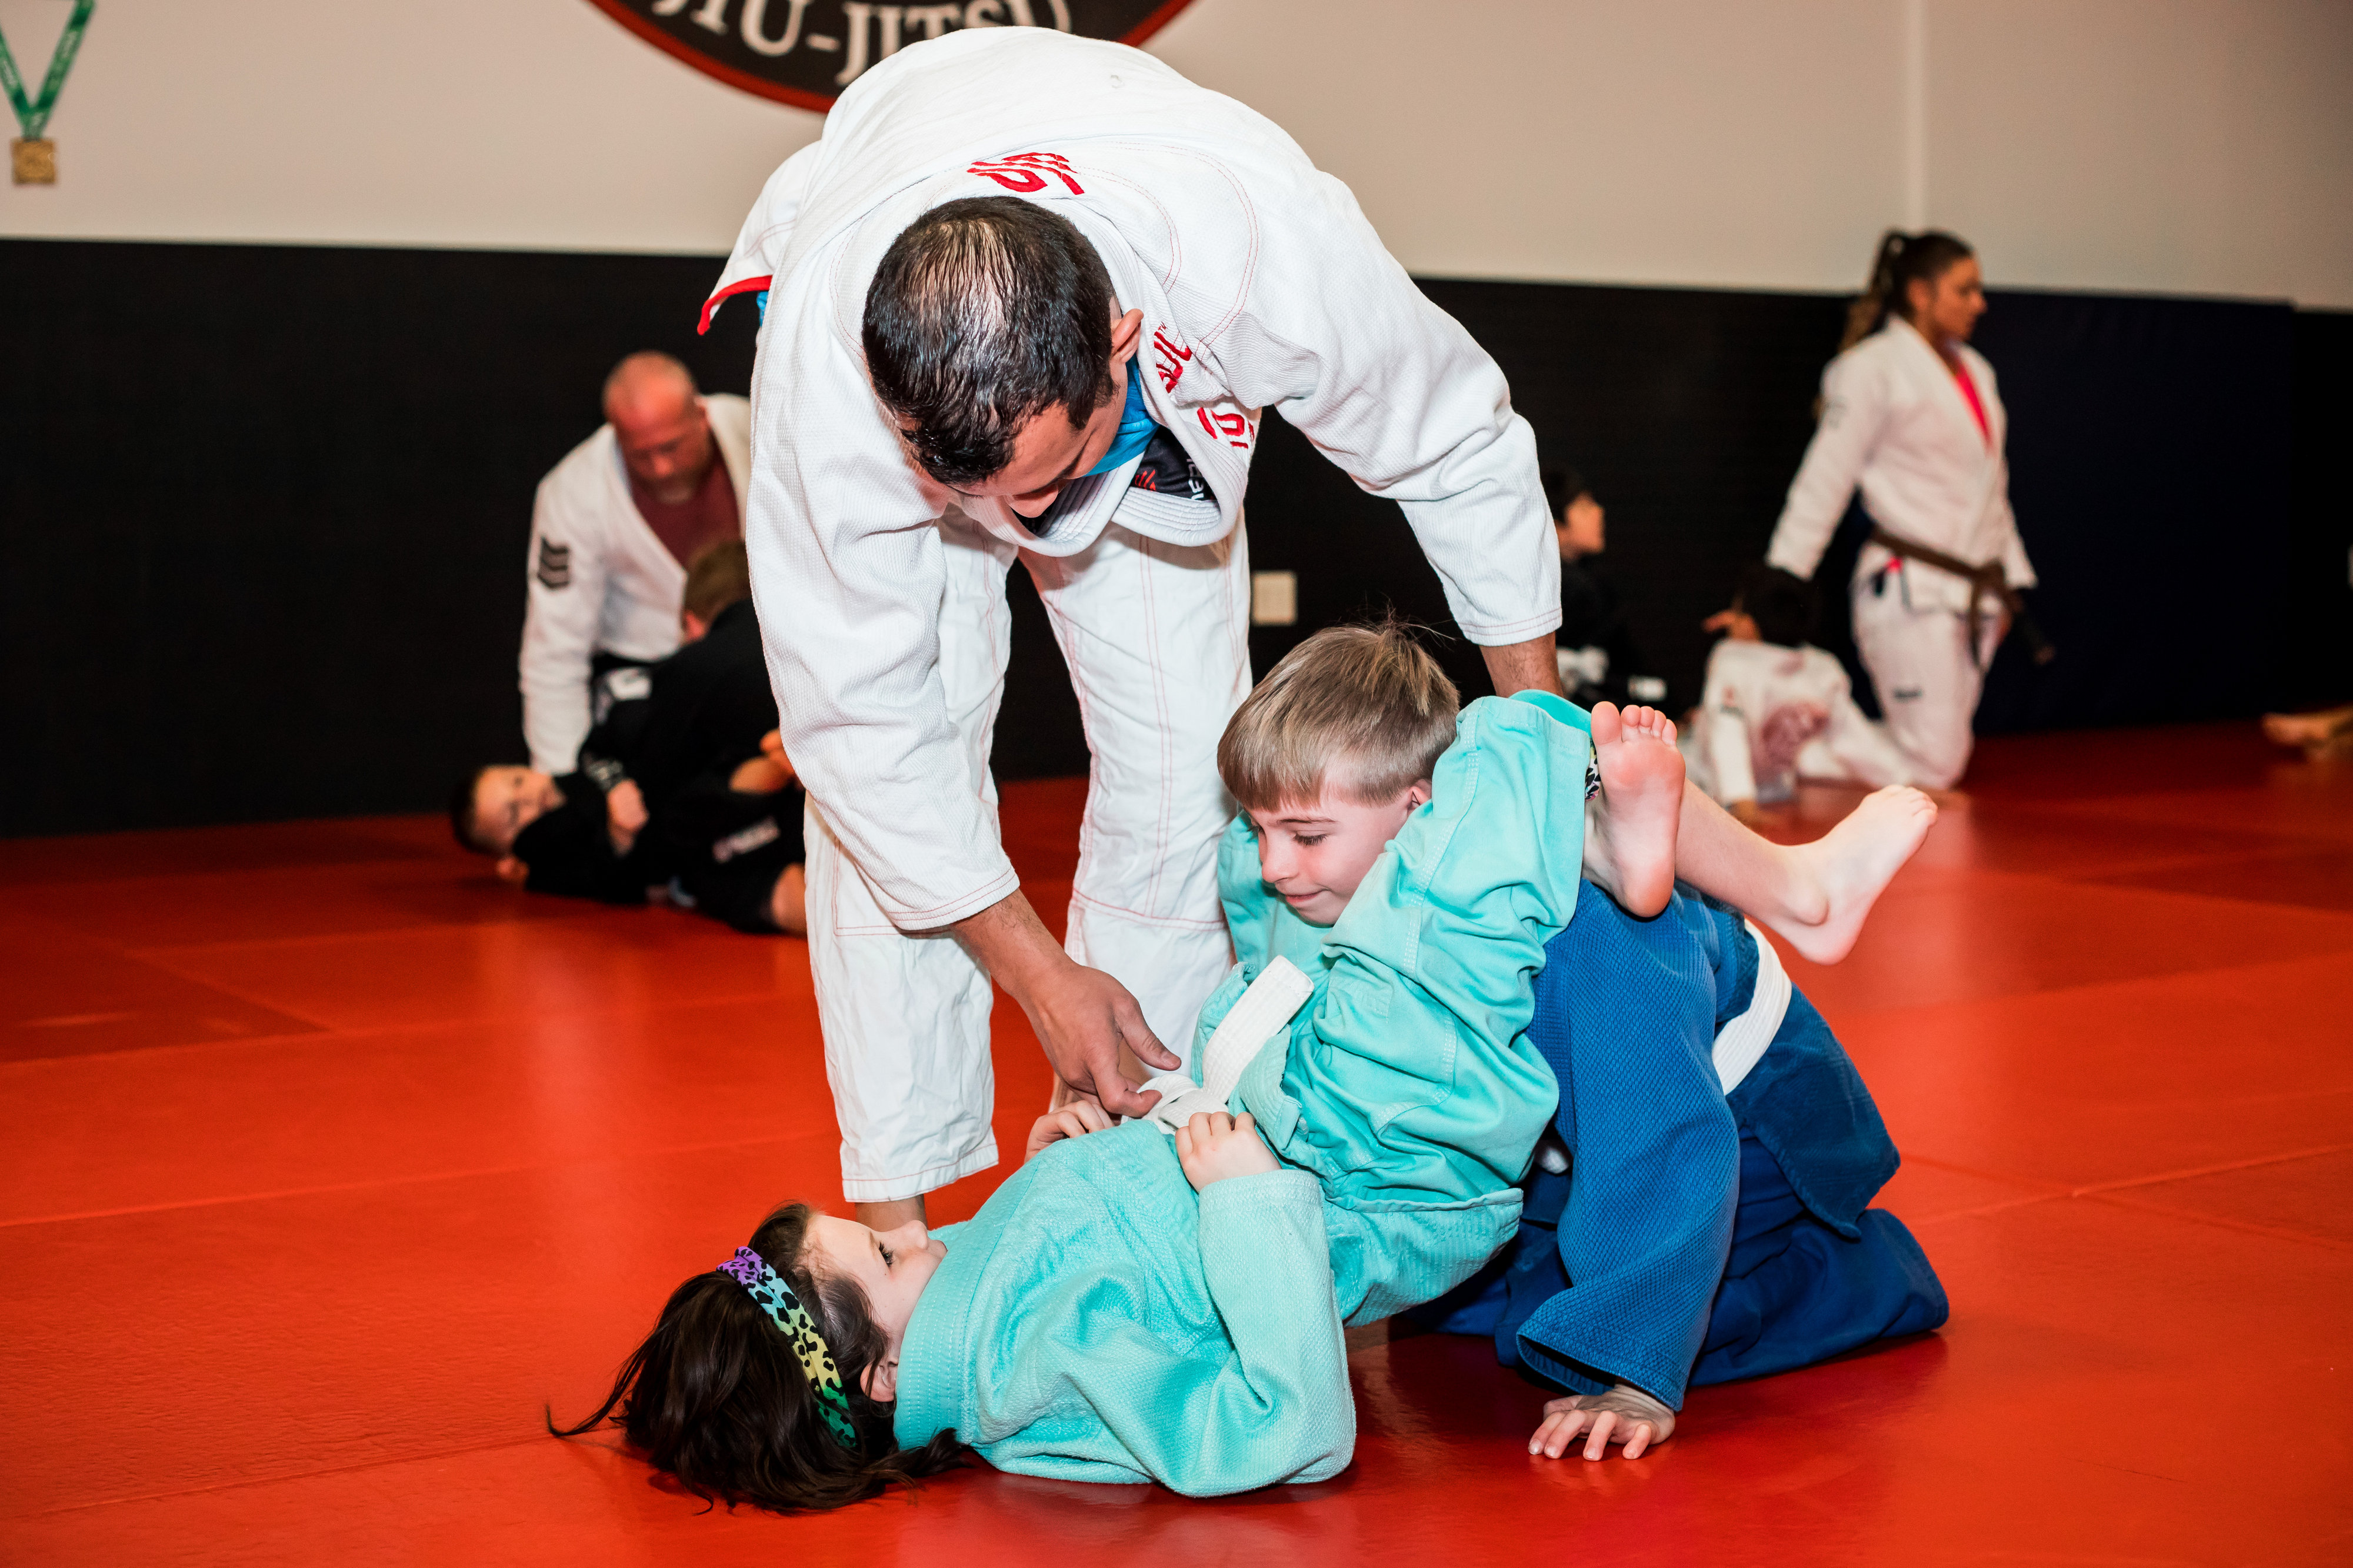 Dominion BJJ kids drilling the triangle choke